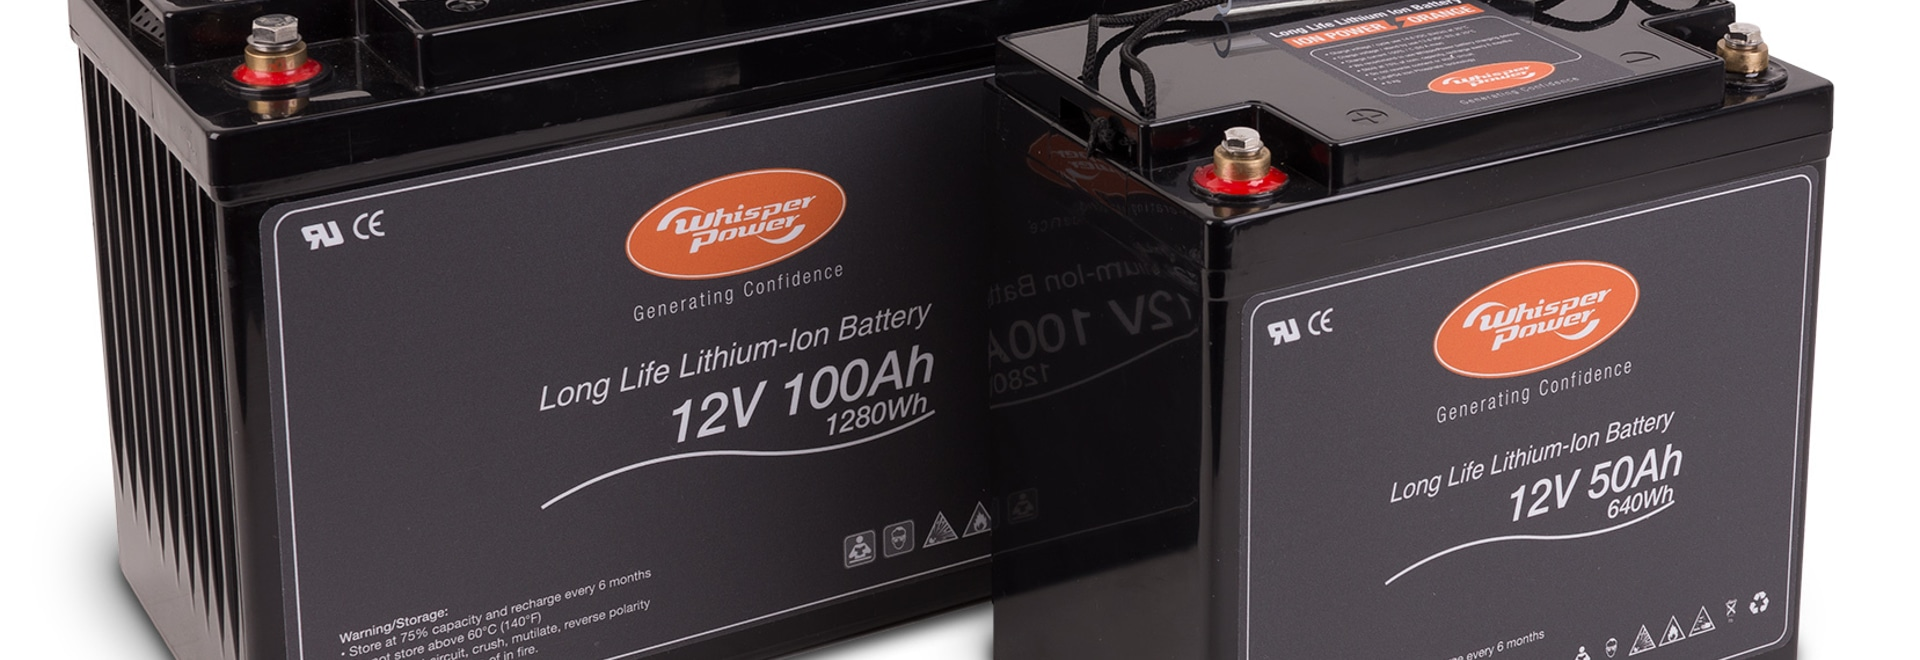 WHISPERPOWER LAUNCHES NEW LITHIUM ION BATTERY